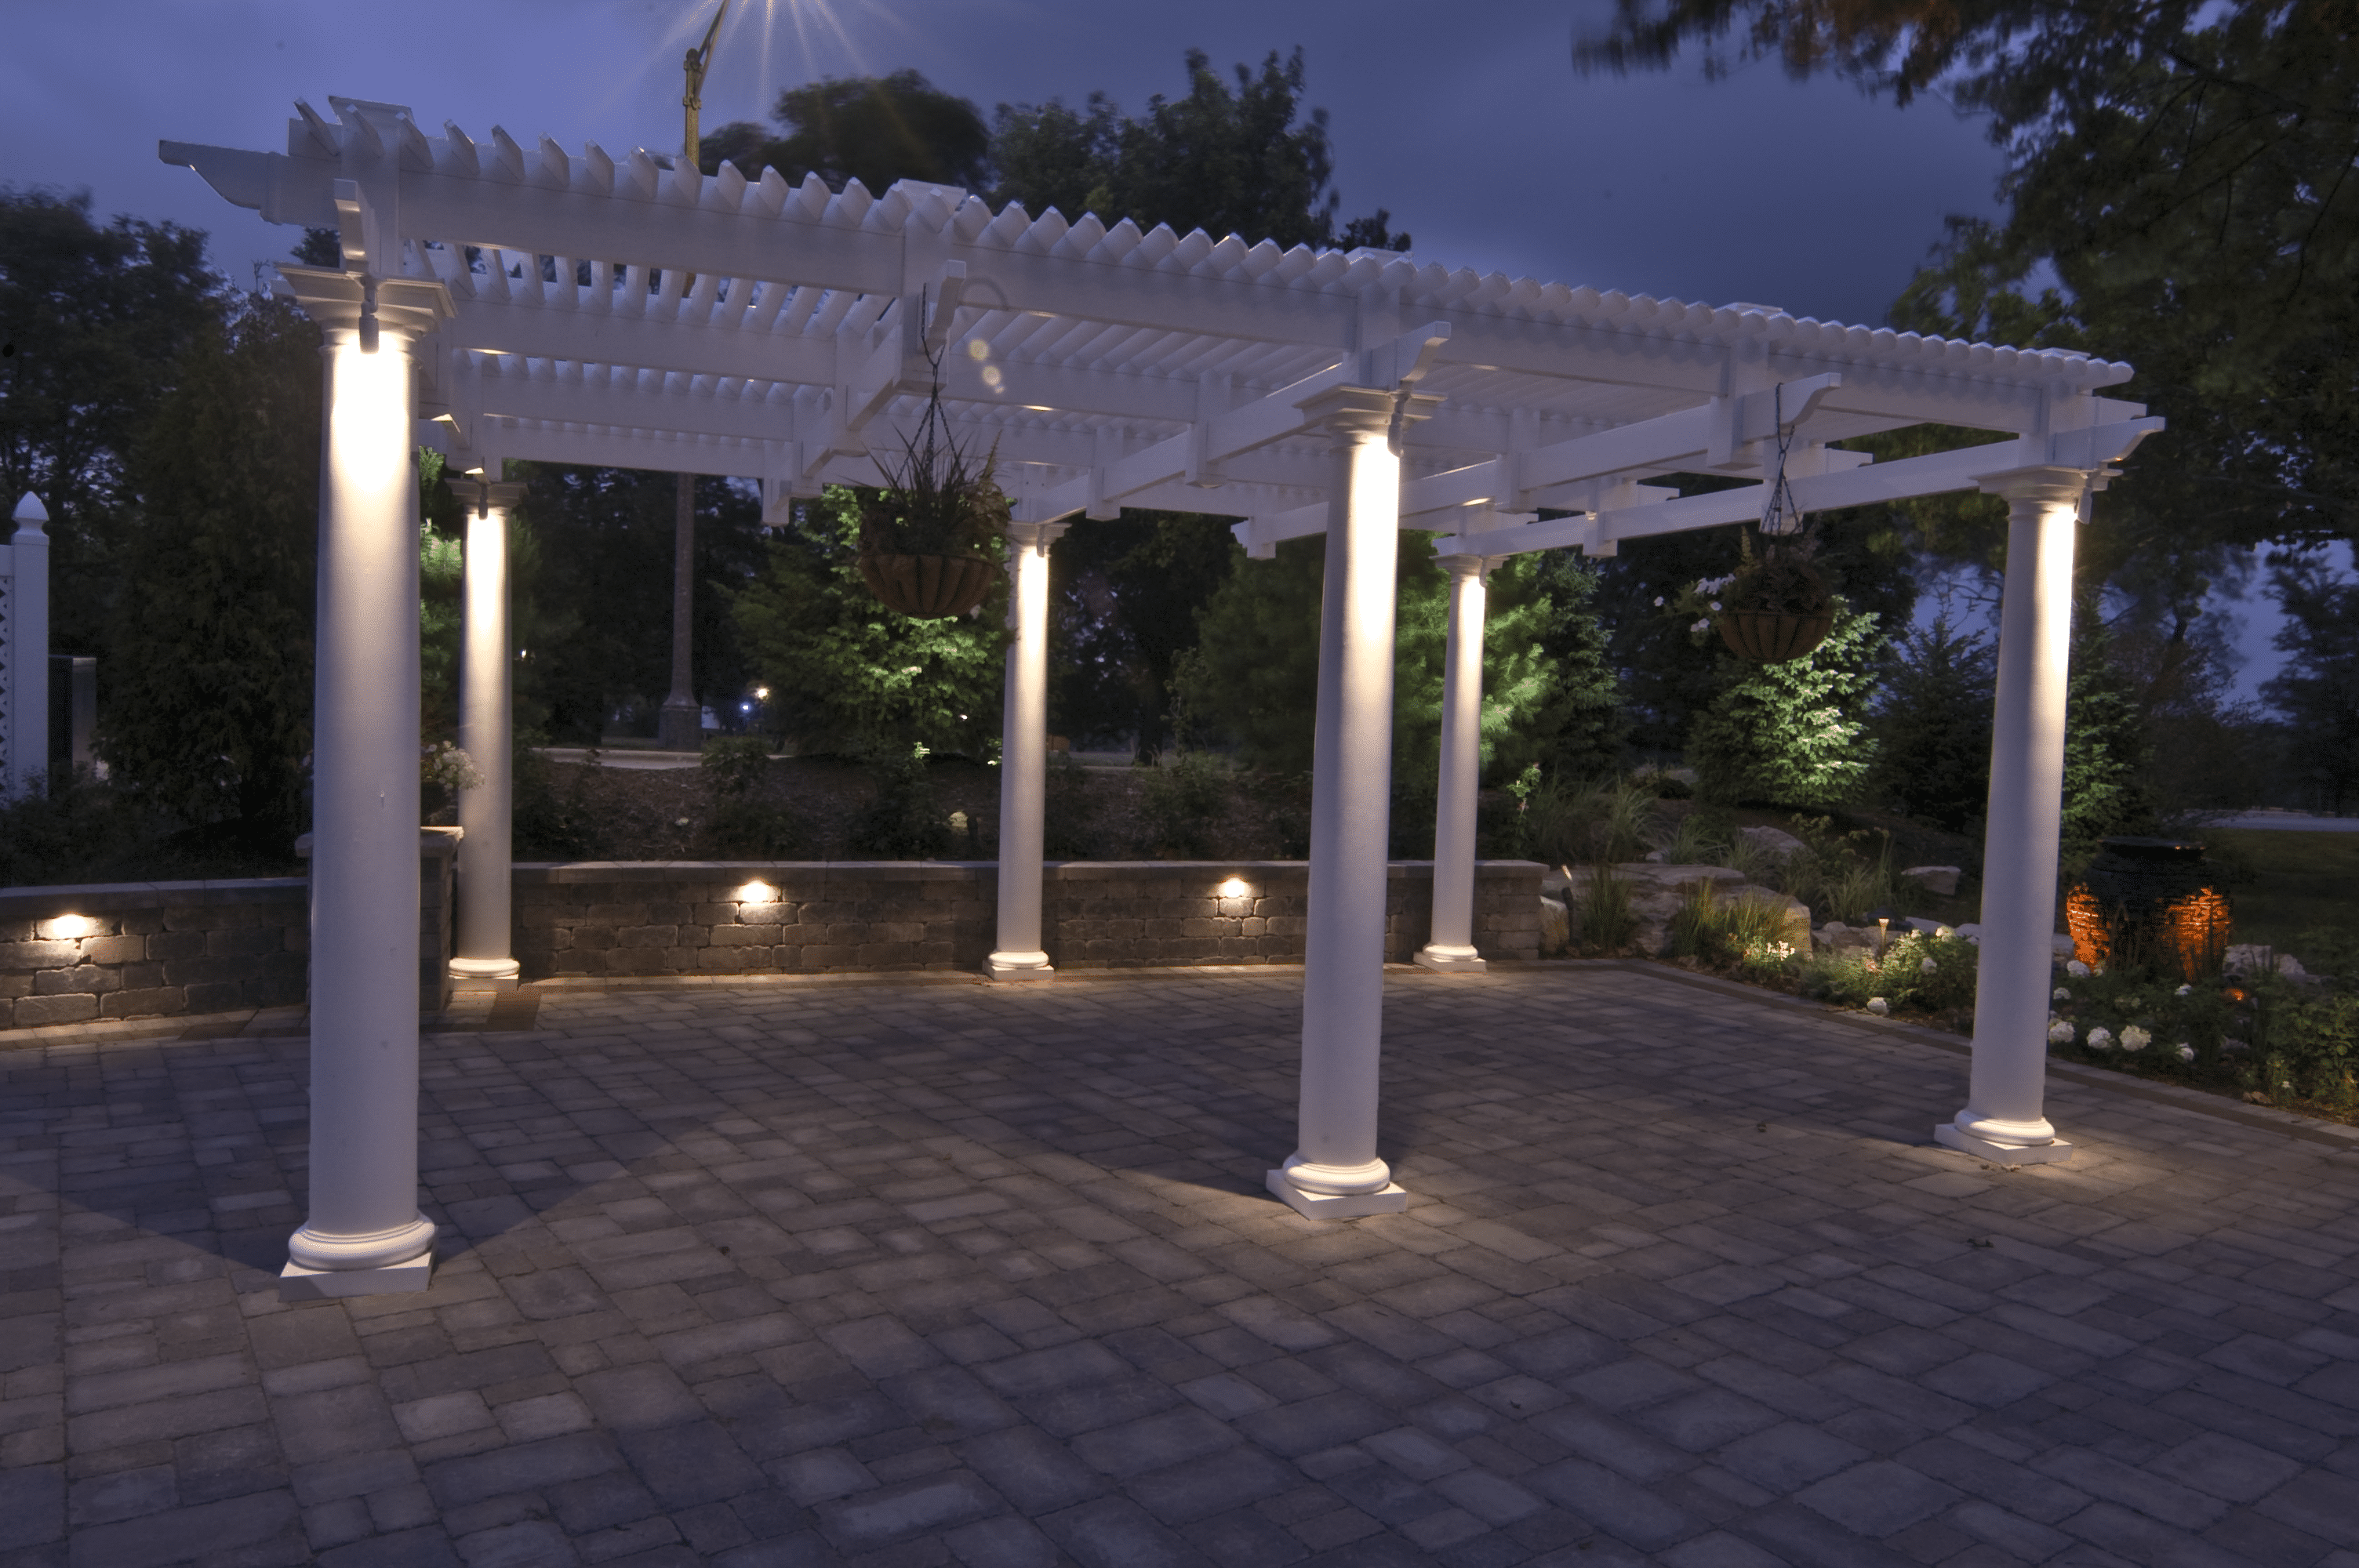 Lewis University Pergola Lighting Outdoor Lighting in Chicago IL